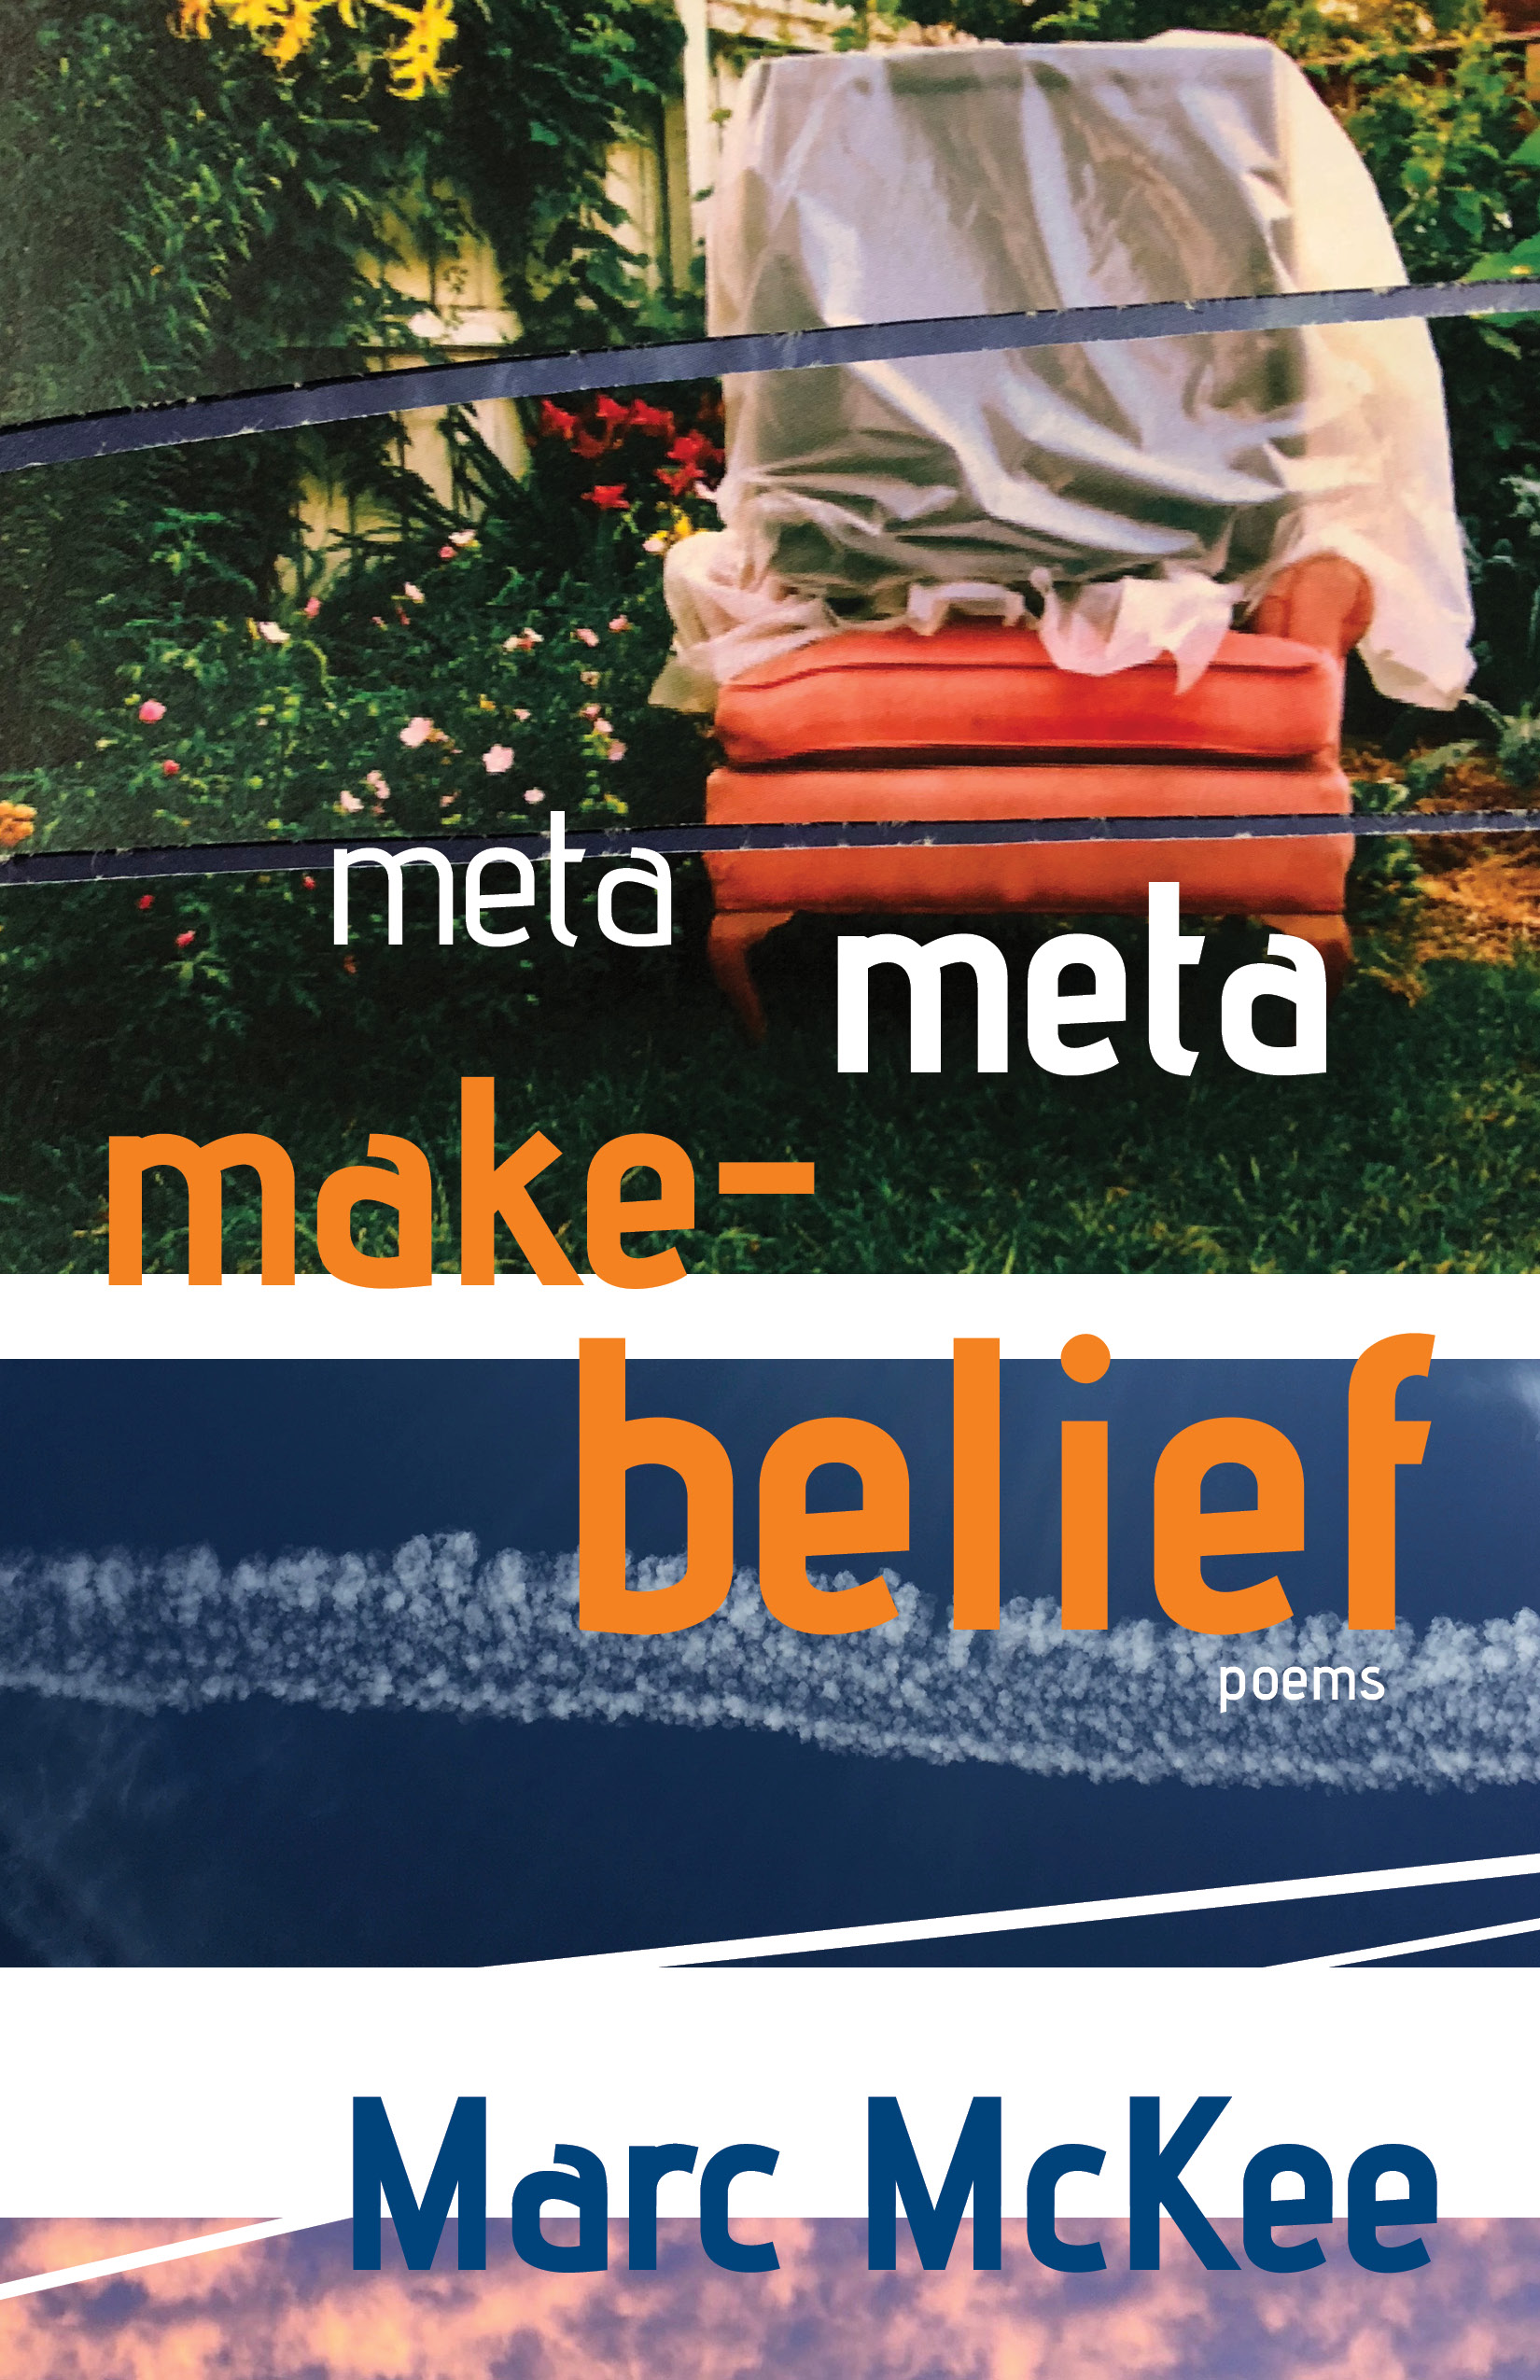 Meta Meta Make-Belief